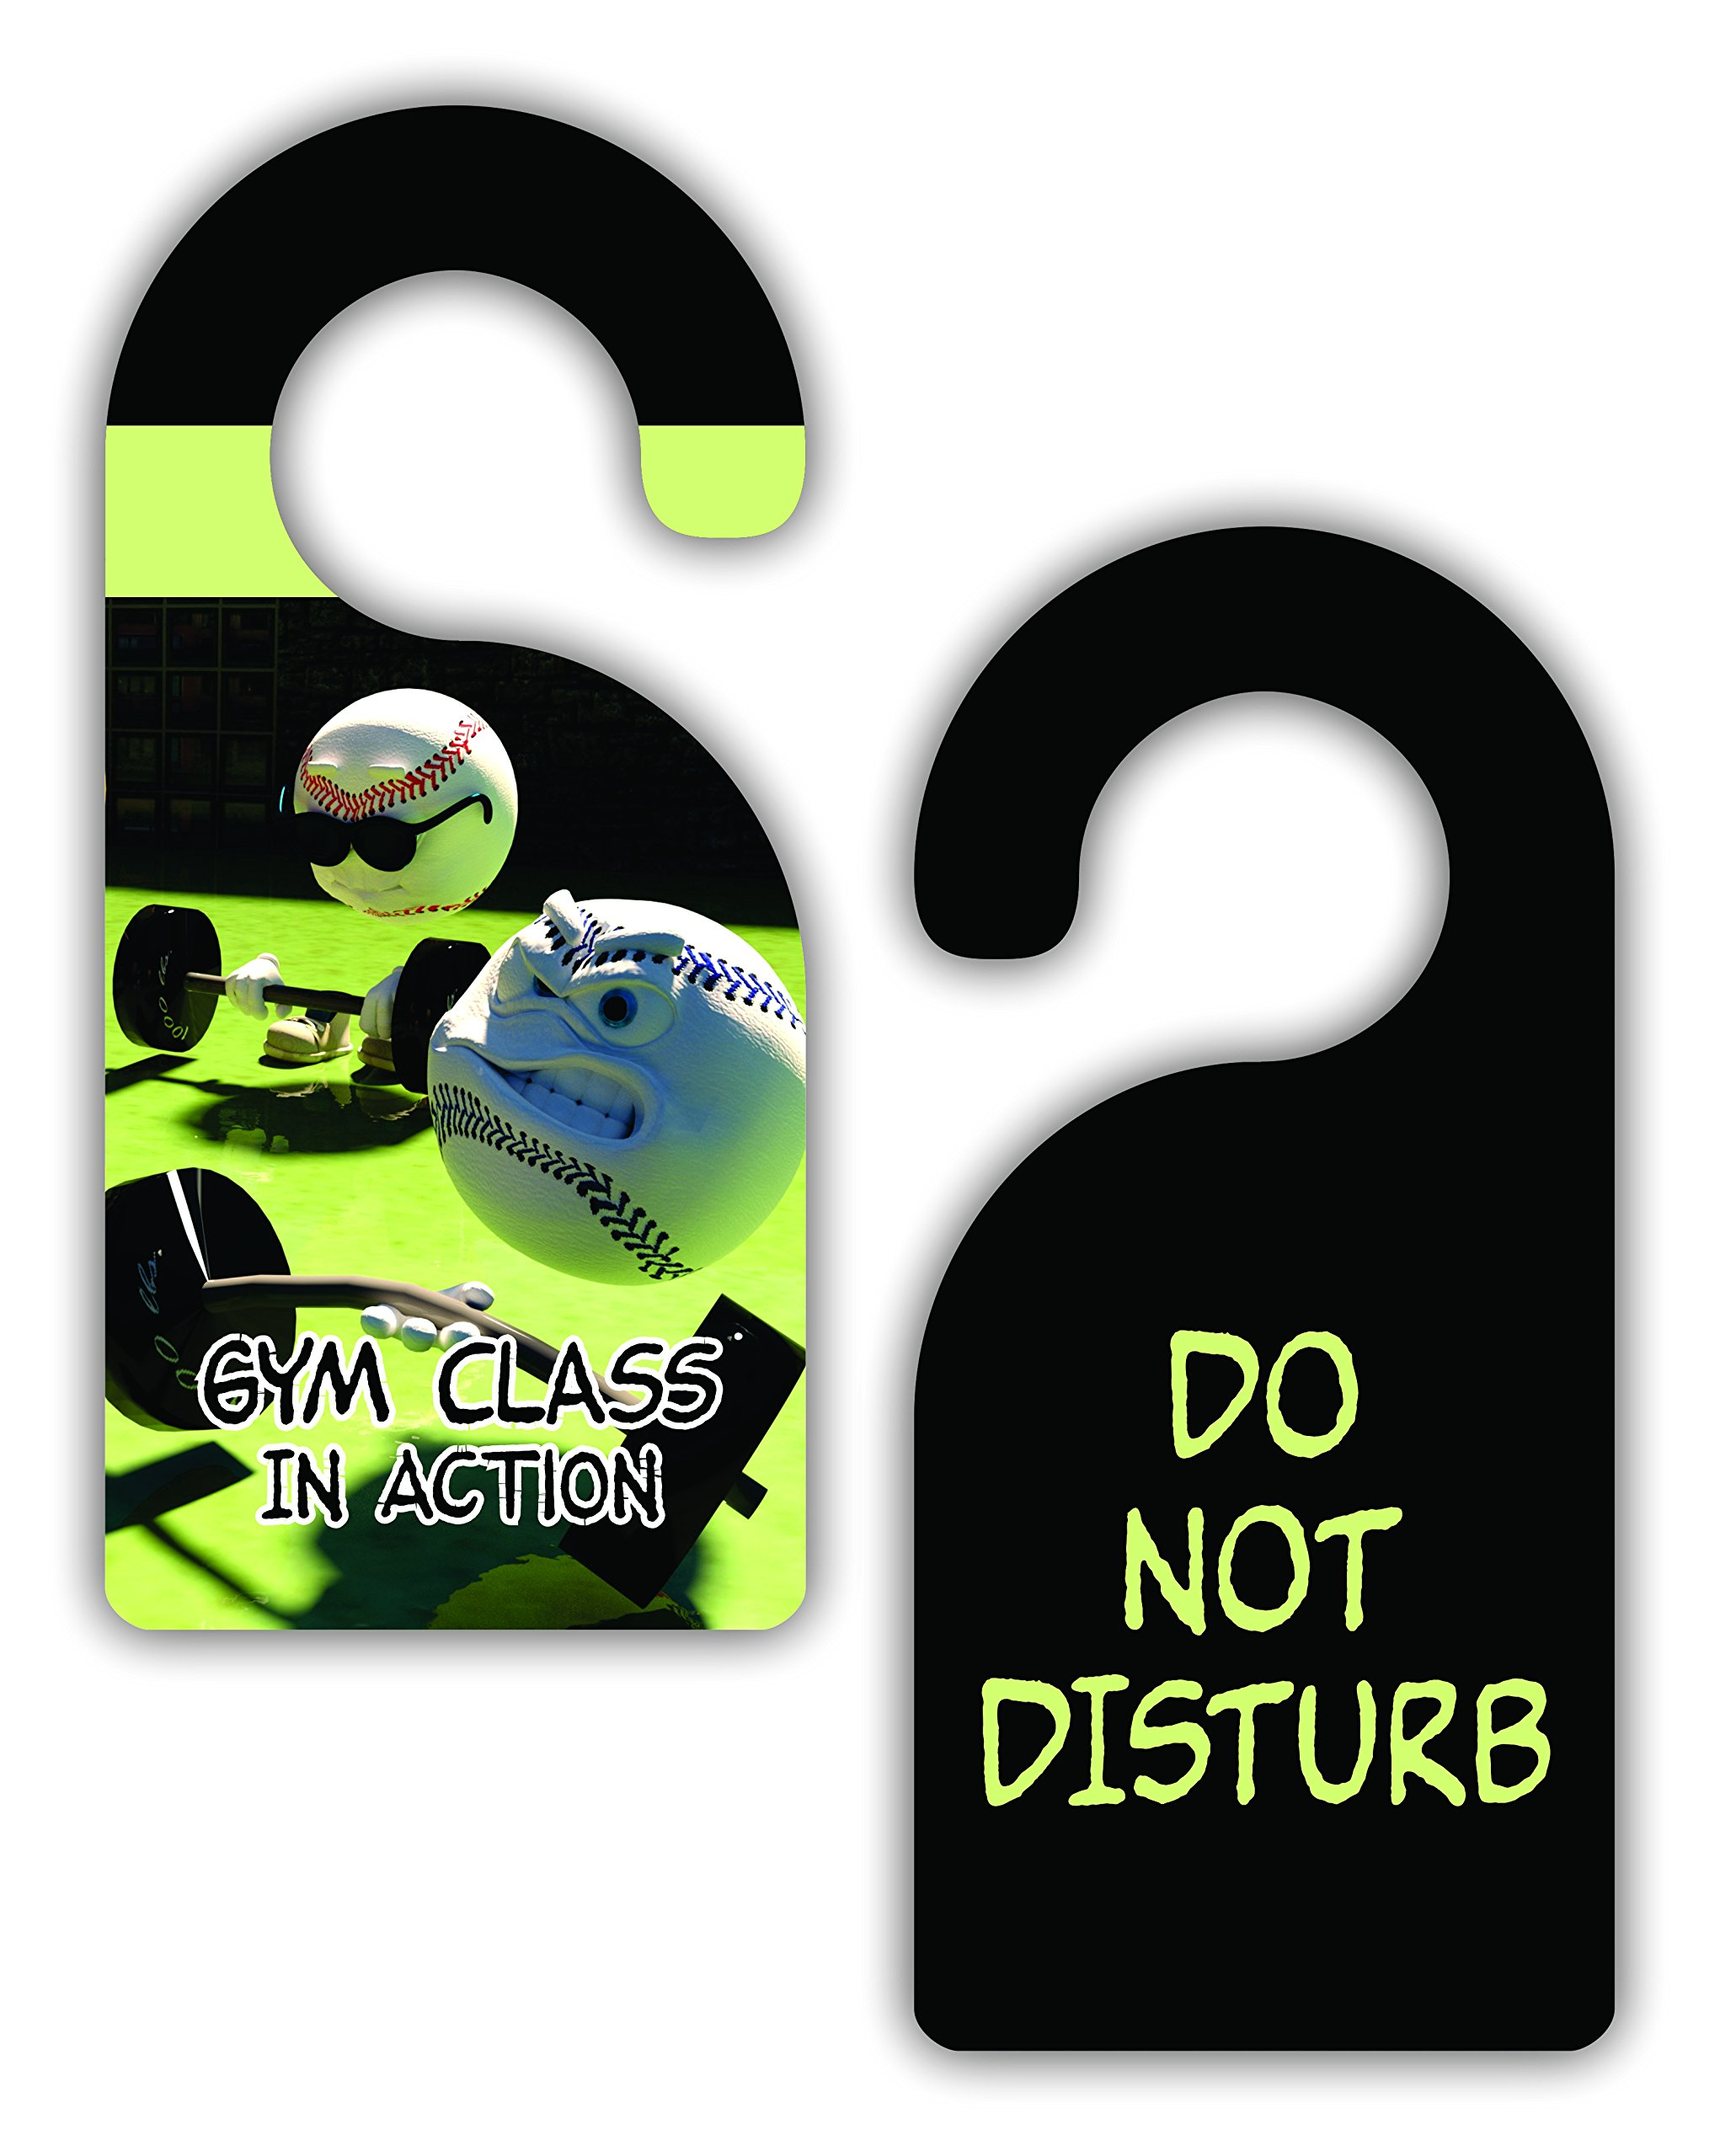 Gym Class in Action/Do Not Disturb - Therapist - Watercolor Print - Double-Sided Hard Plastic Glossy Door Hanger